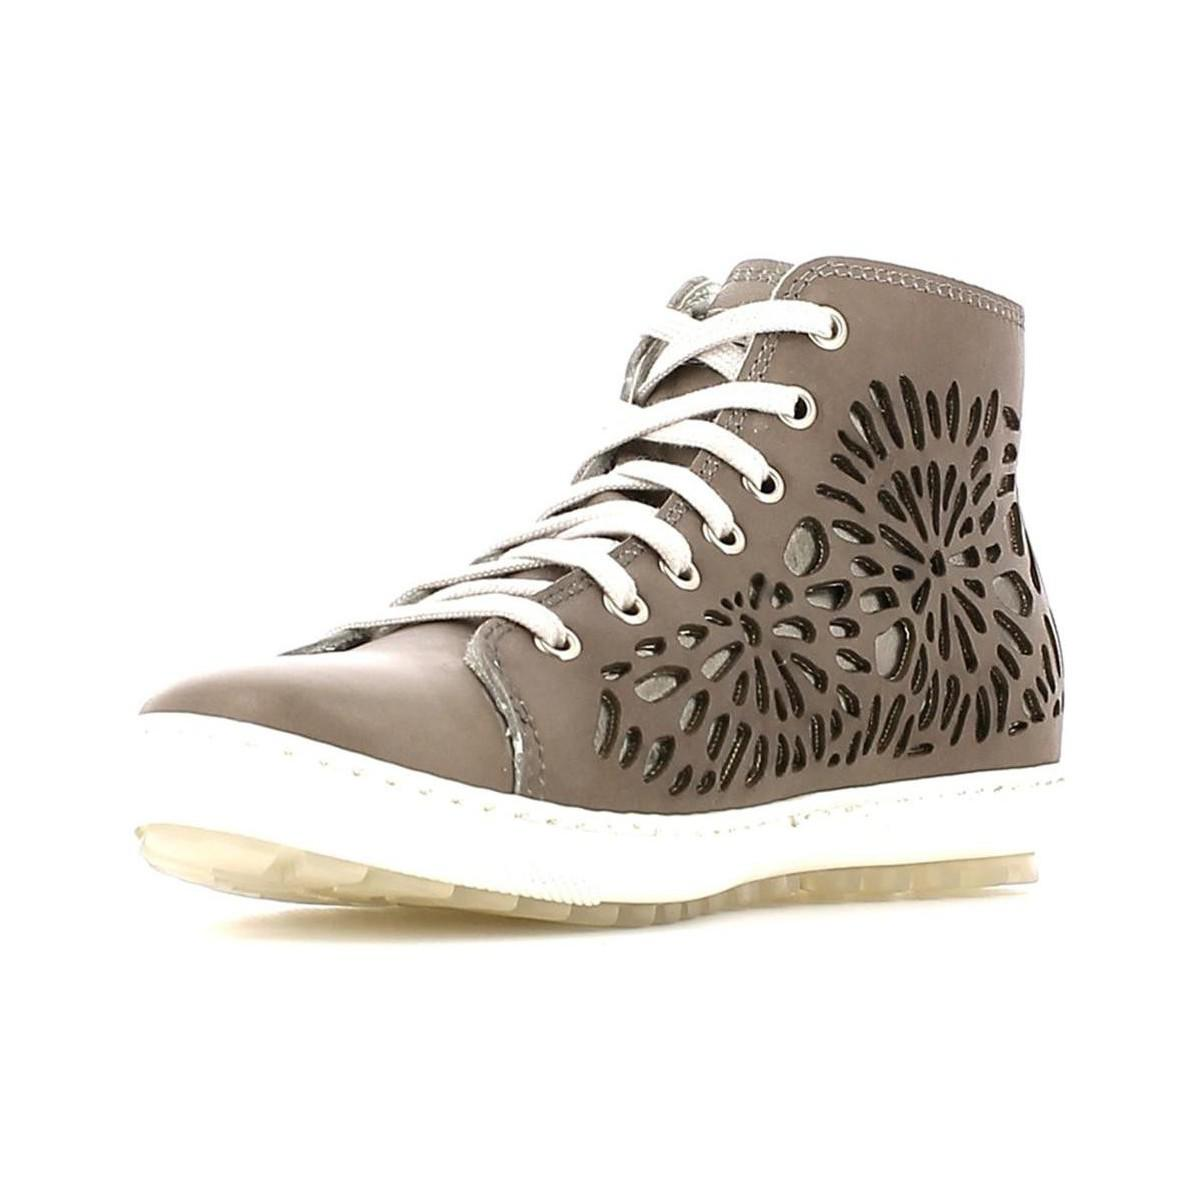 Keys 4965 Sneakers Women Taupe Women's Shoes (high-top Trainers) In Grey in Grey